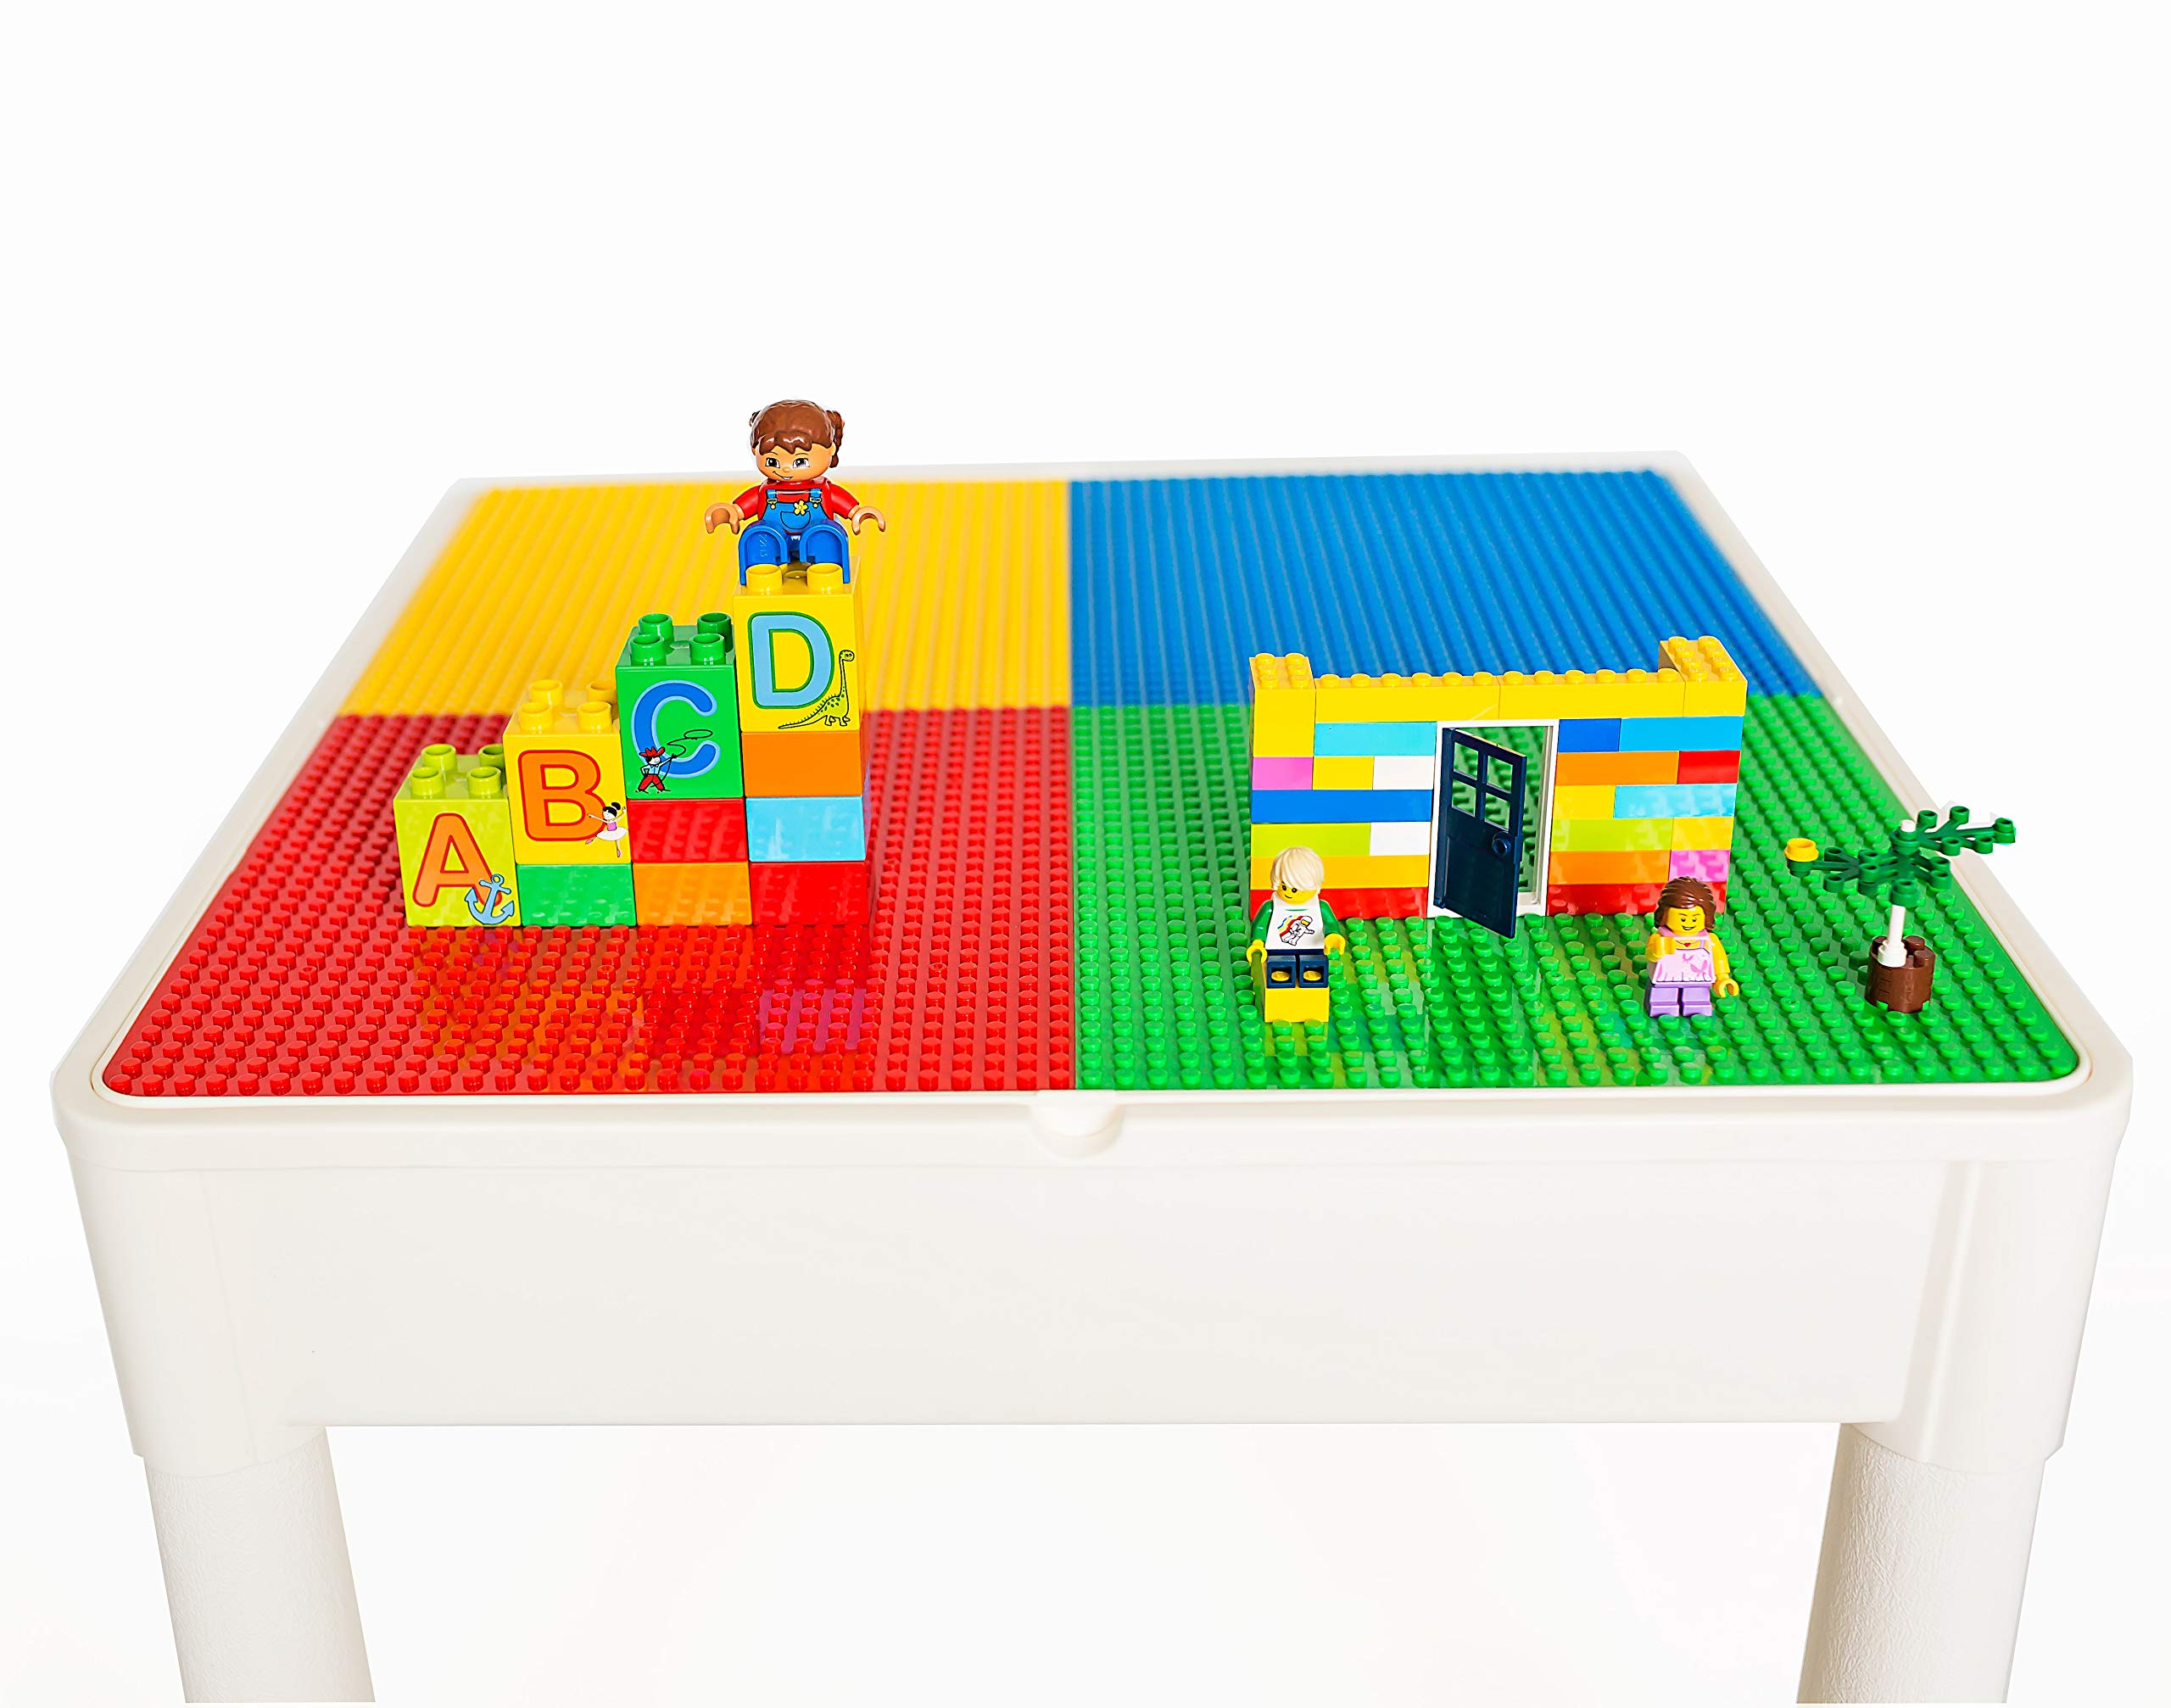 BUILDING BLOCK ACTIVITY TABLE WITH BLOCKS CHILDRENS FUN PLAY SET CONSTRUCTION